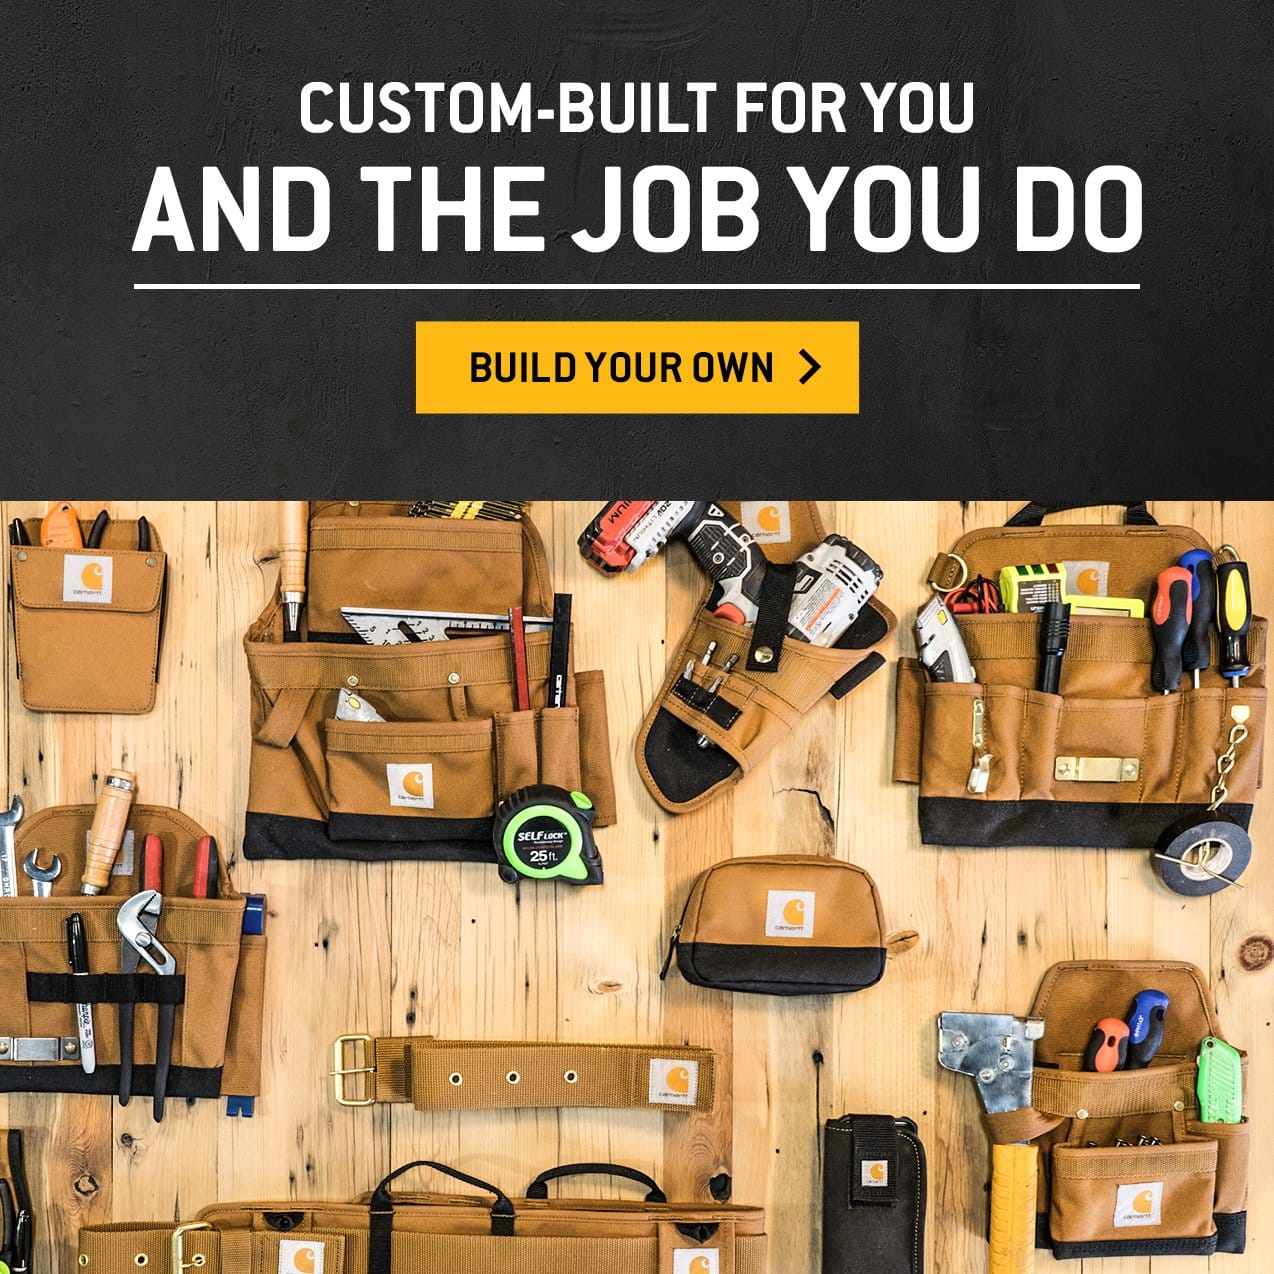 Custom-built for you and the job you do, build your own